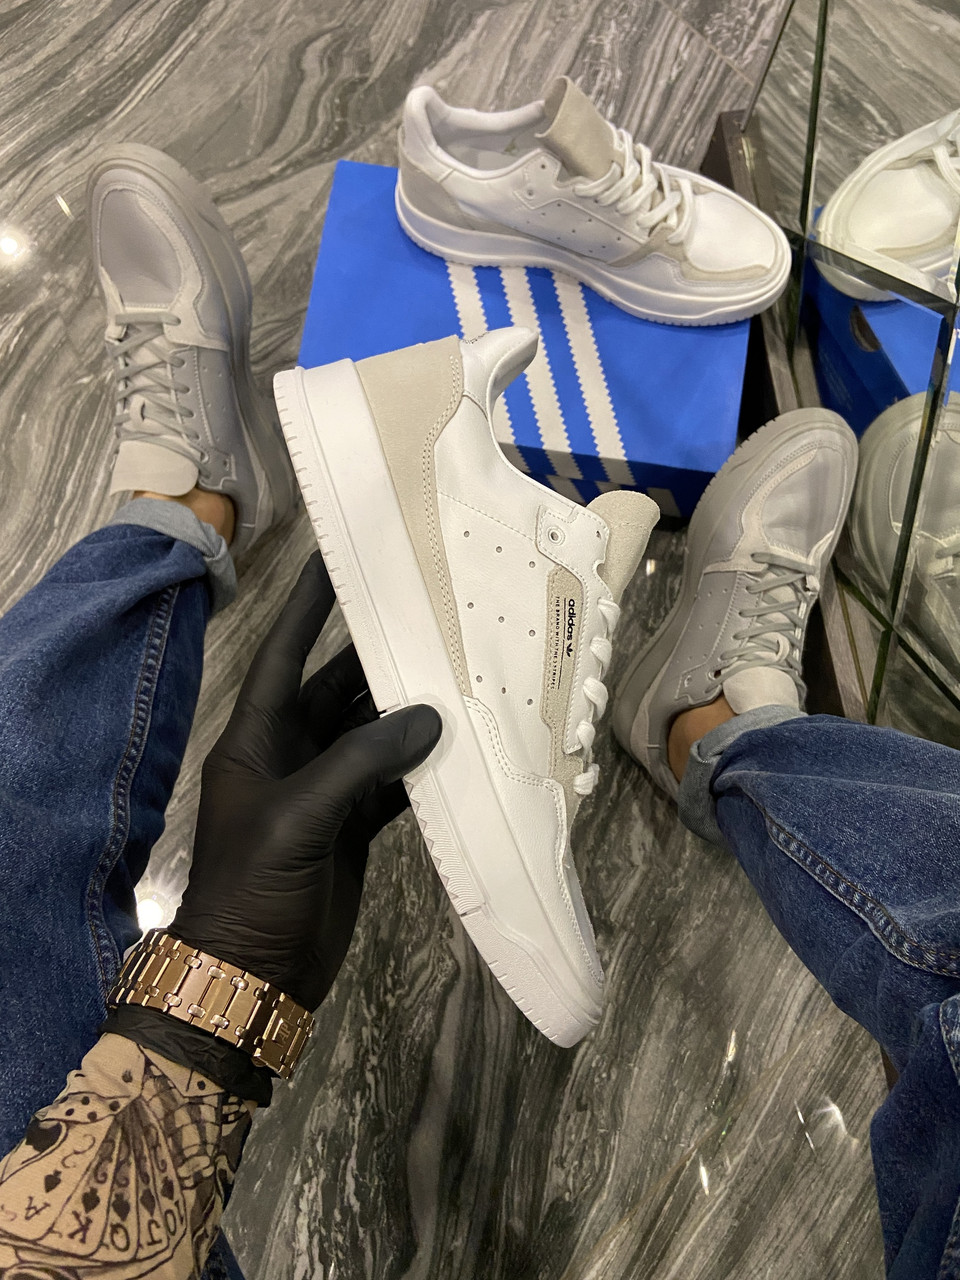 Adidas Brand With The 3 Stripes Grey White(Белый)